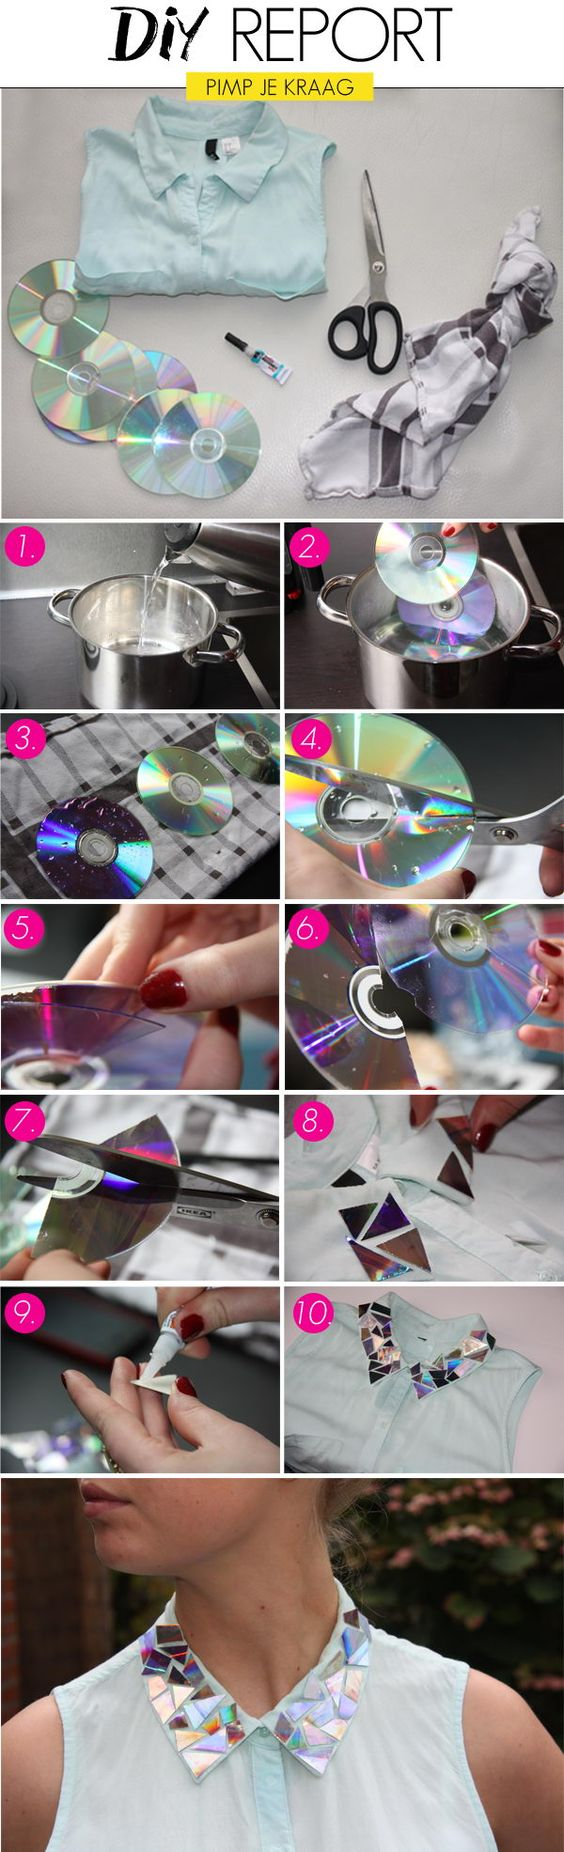 Add a shiny collar to your boring blouse with old CDs. Fashionable DIY Clothes Ideas, http://hative.com/fashionable-diy-clothes-ideas/,: